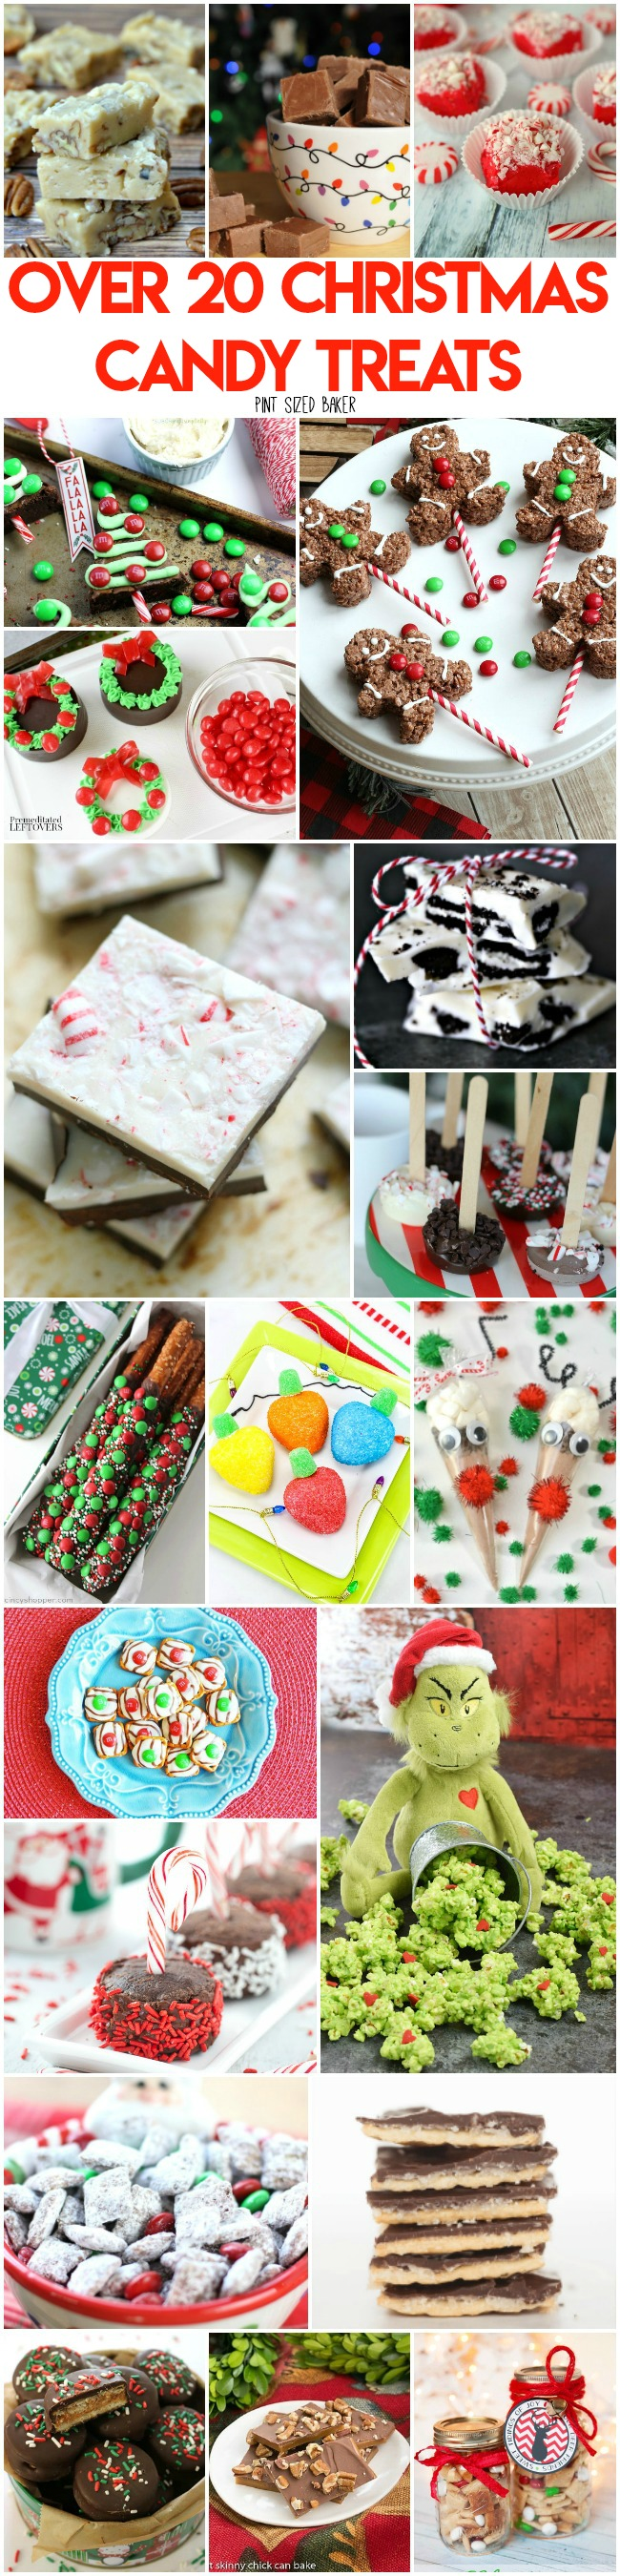 The holidays are all about the sweets. Here's Over 20 Christmas Candy Treats to make this season. Oreo treats, toffee, fudge, and more!